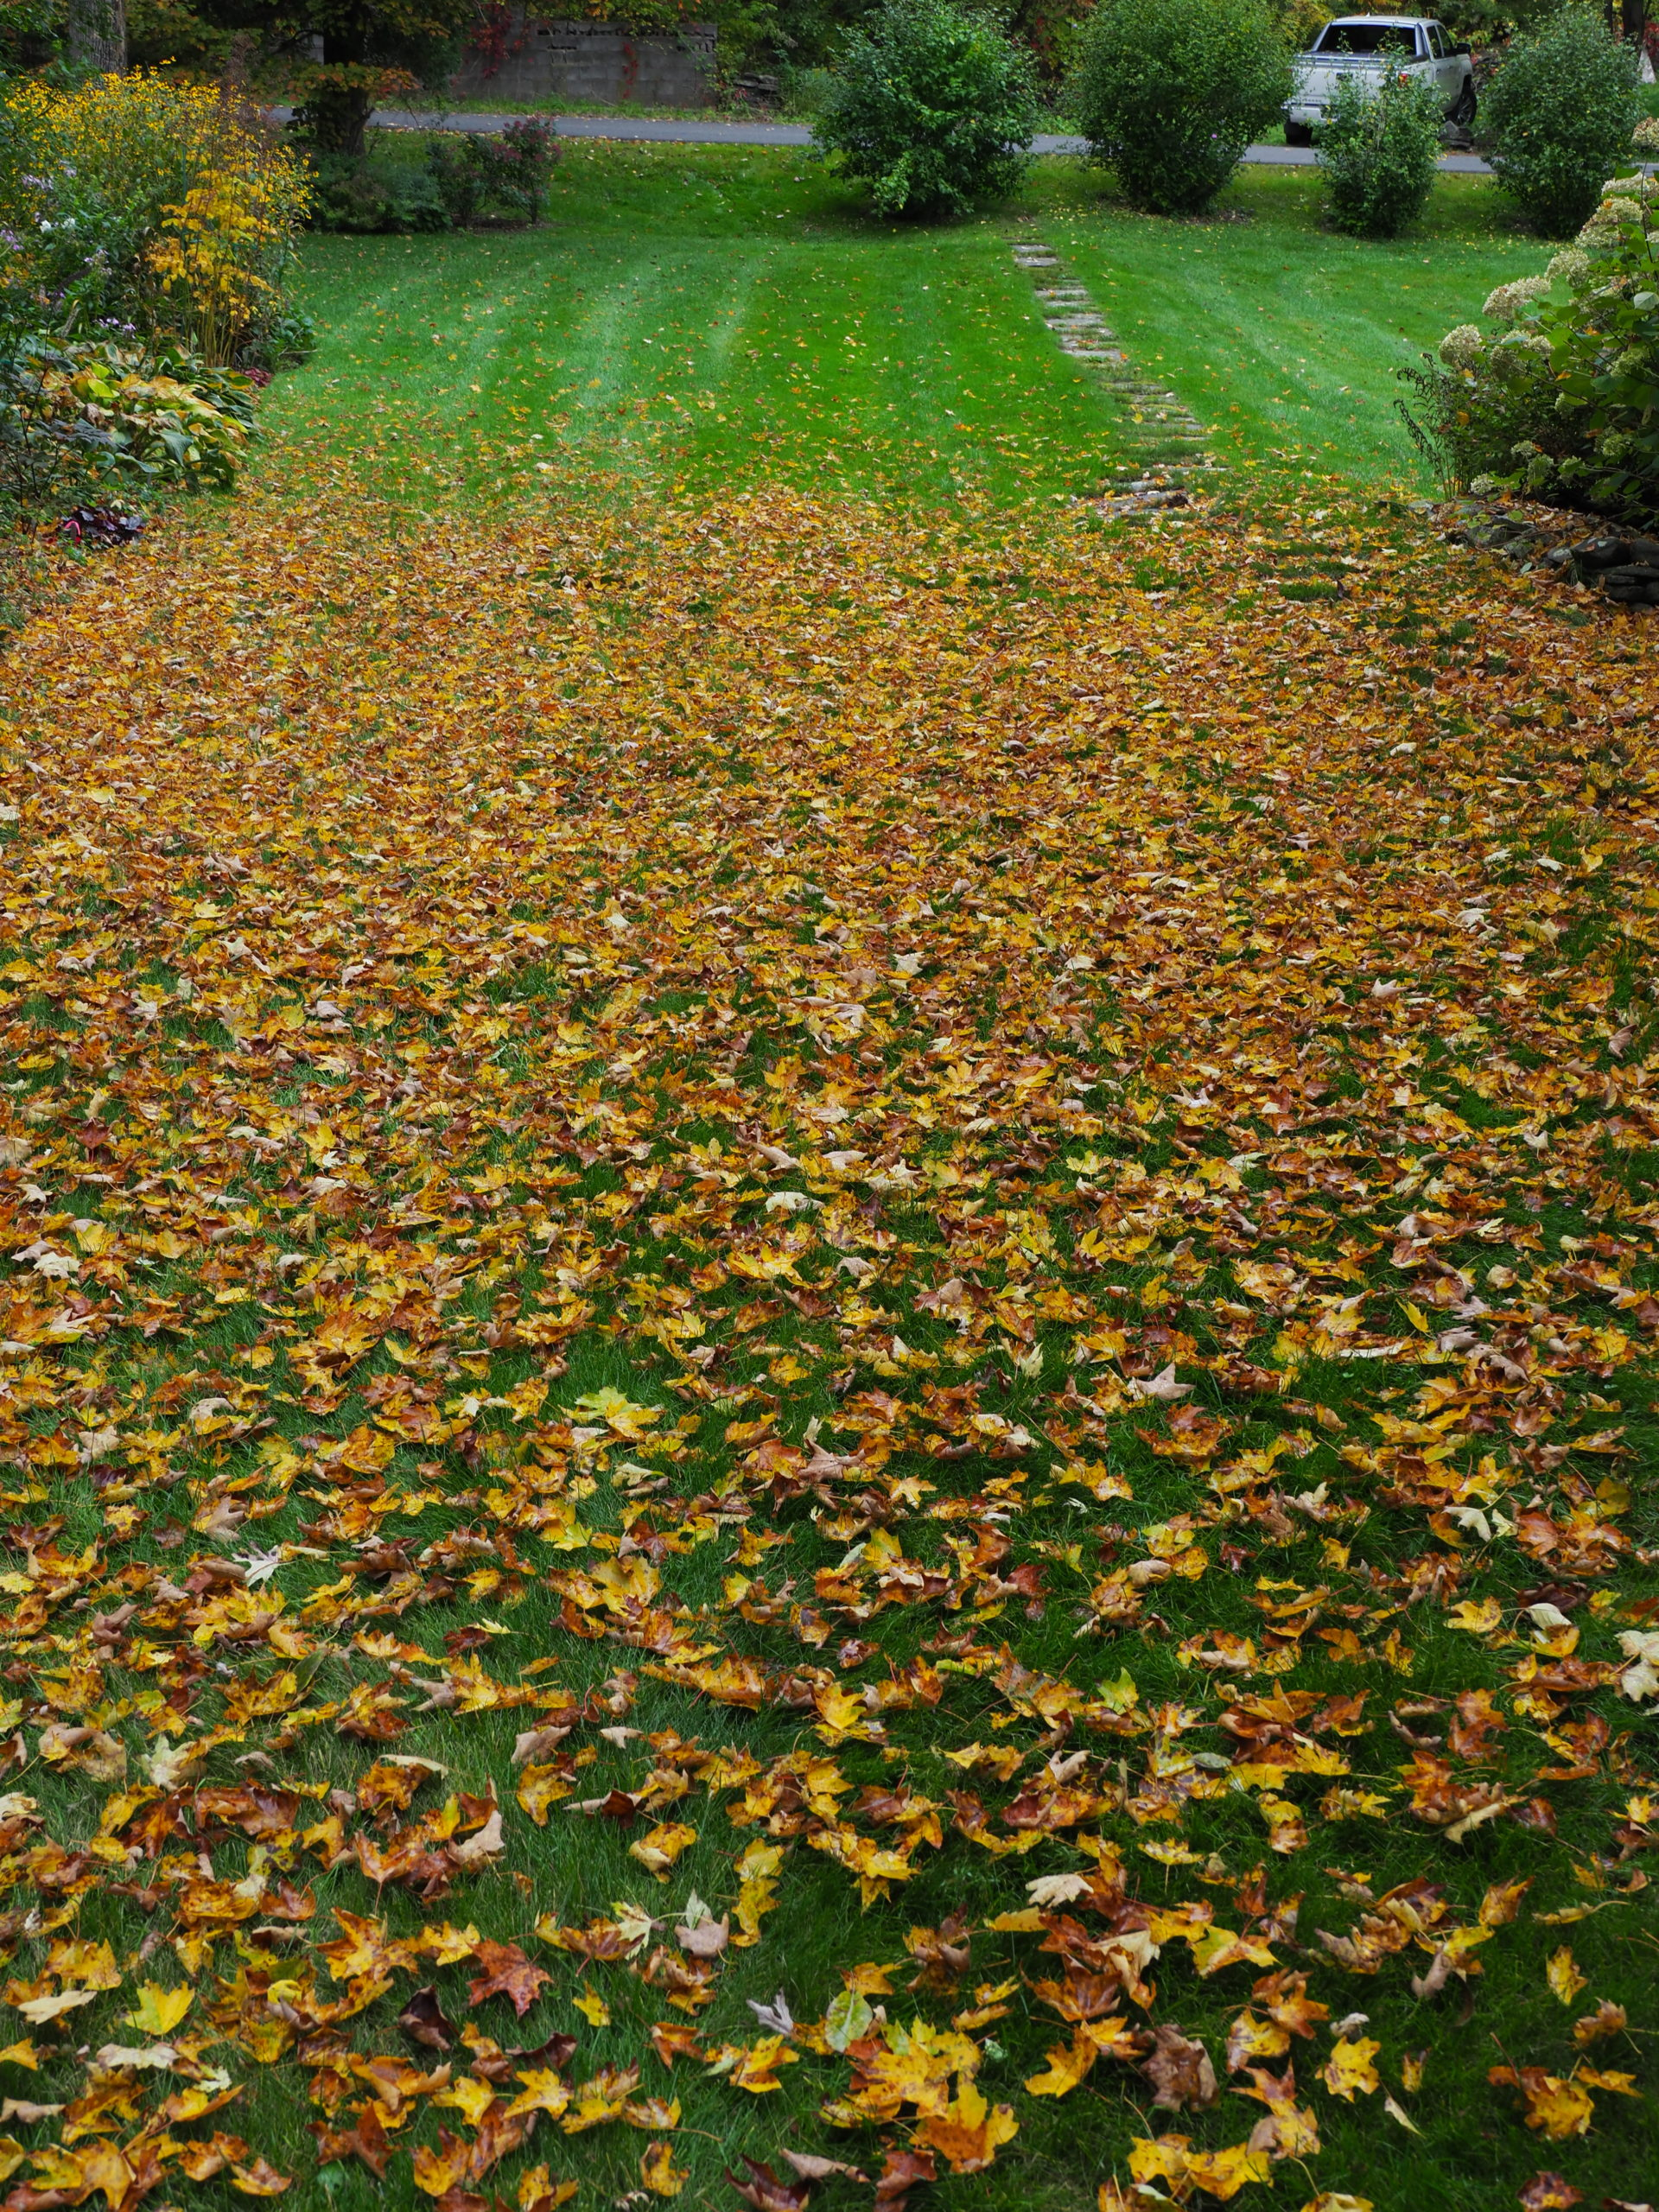 These maple leaves fall straight down from the maple above. There are probably too may for a mulching mower to handle, but if raked or blown into a pile they can easily be shredded. If left on the lawn the leaves will inevitably get wet, mat down and kill the grass.